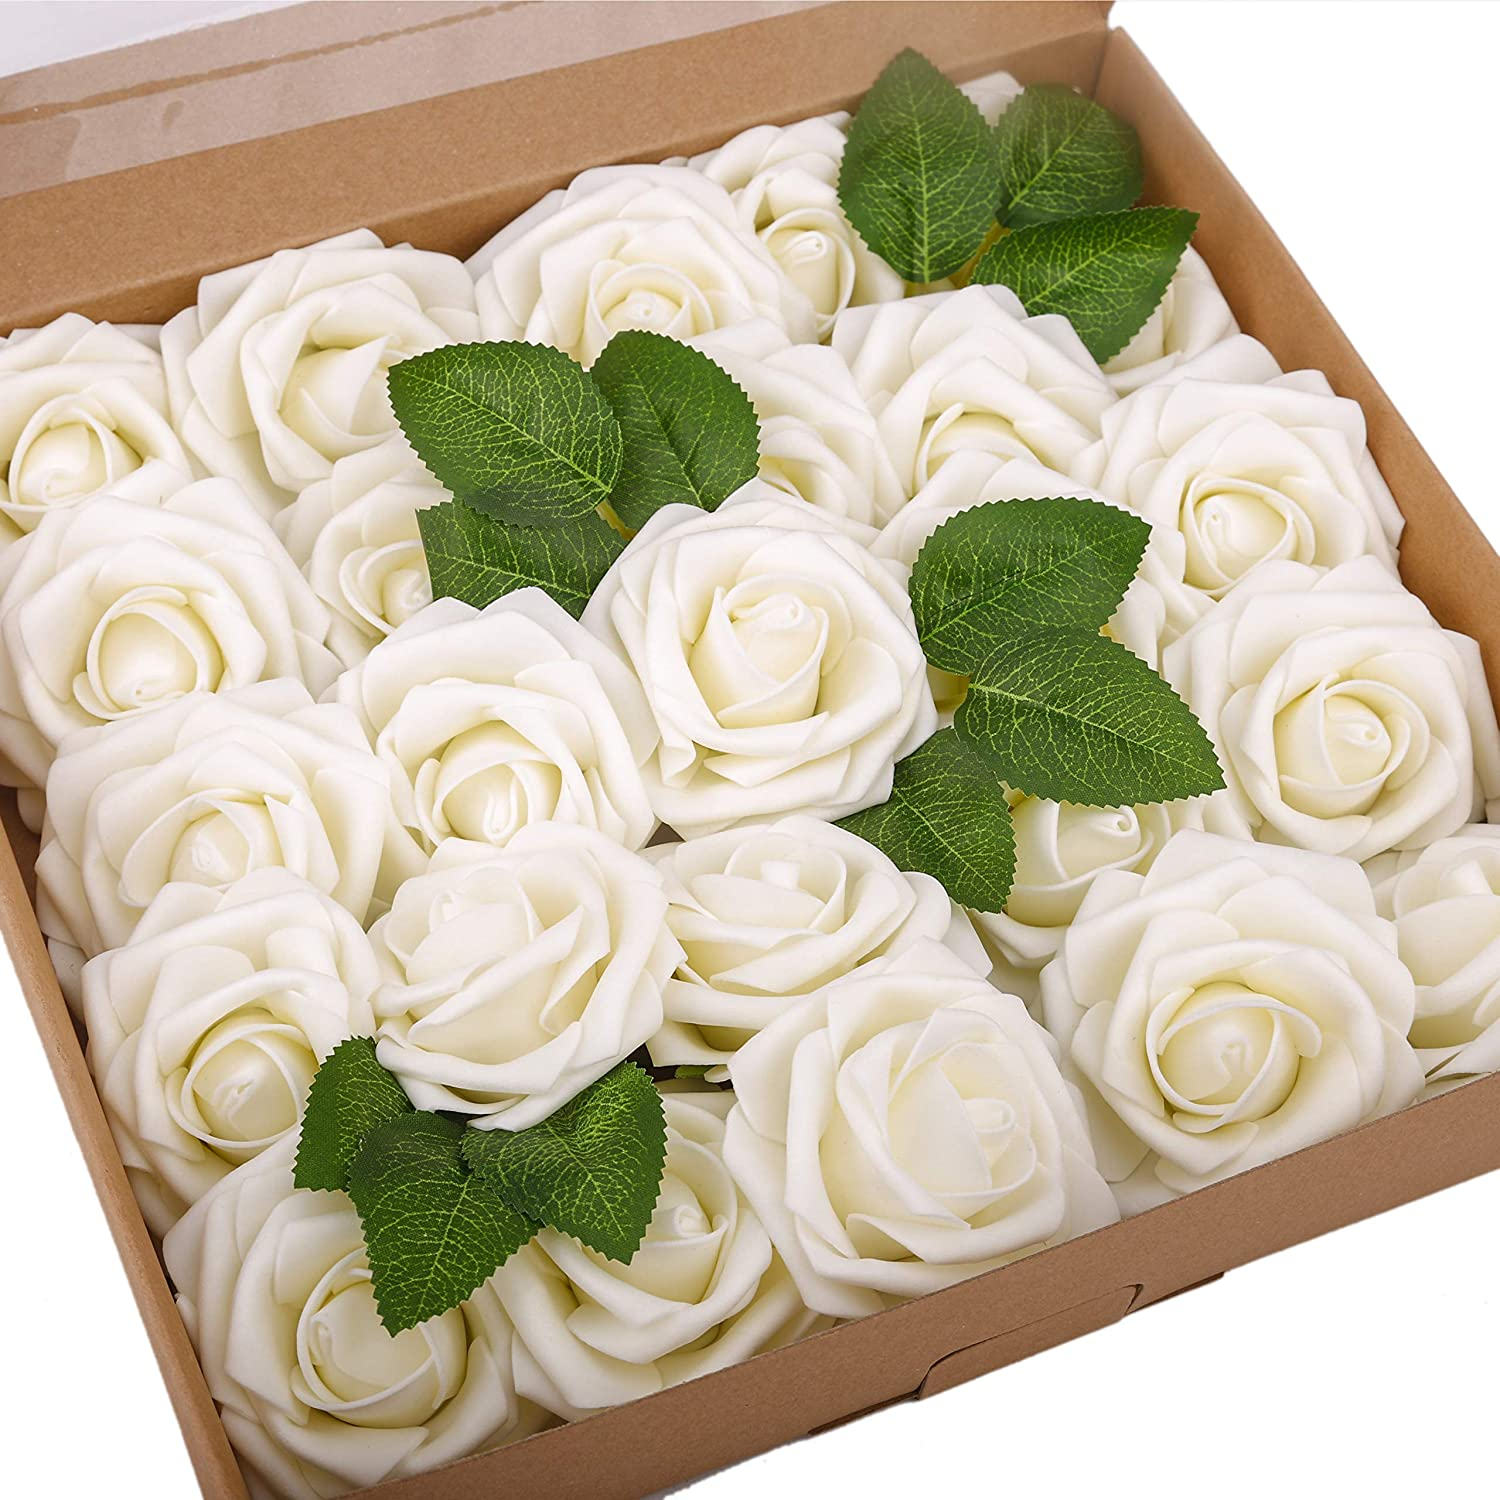 BOMAROLAN Artificial Rose Flowers Real Touch 25pcs Faux Foam Roses Fake Flower Head w/Stem, DIY Wedding Decor Bridal Bridesmaid Bouquets Centerpieces Baby Shower Party Home Decorations (Cream)